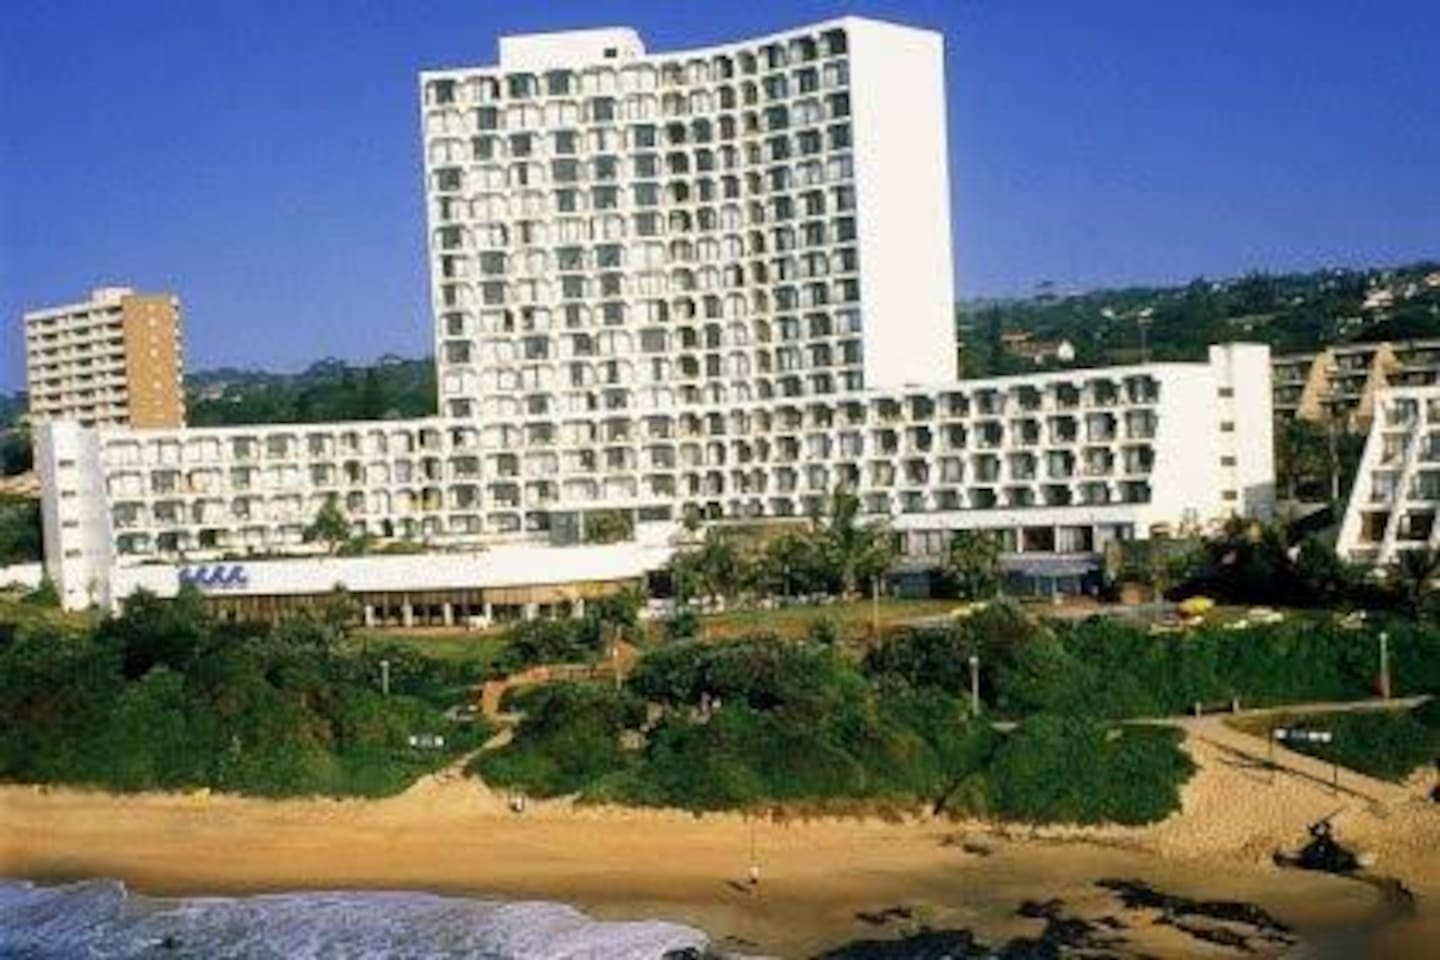 The Resort on the beach with private pools and restaurants.  Prices in South Africa are very reasonable compared to other resorts around the world